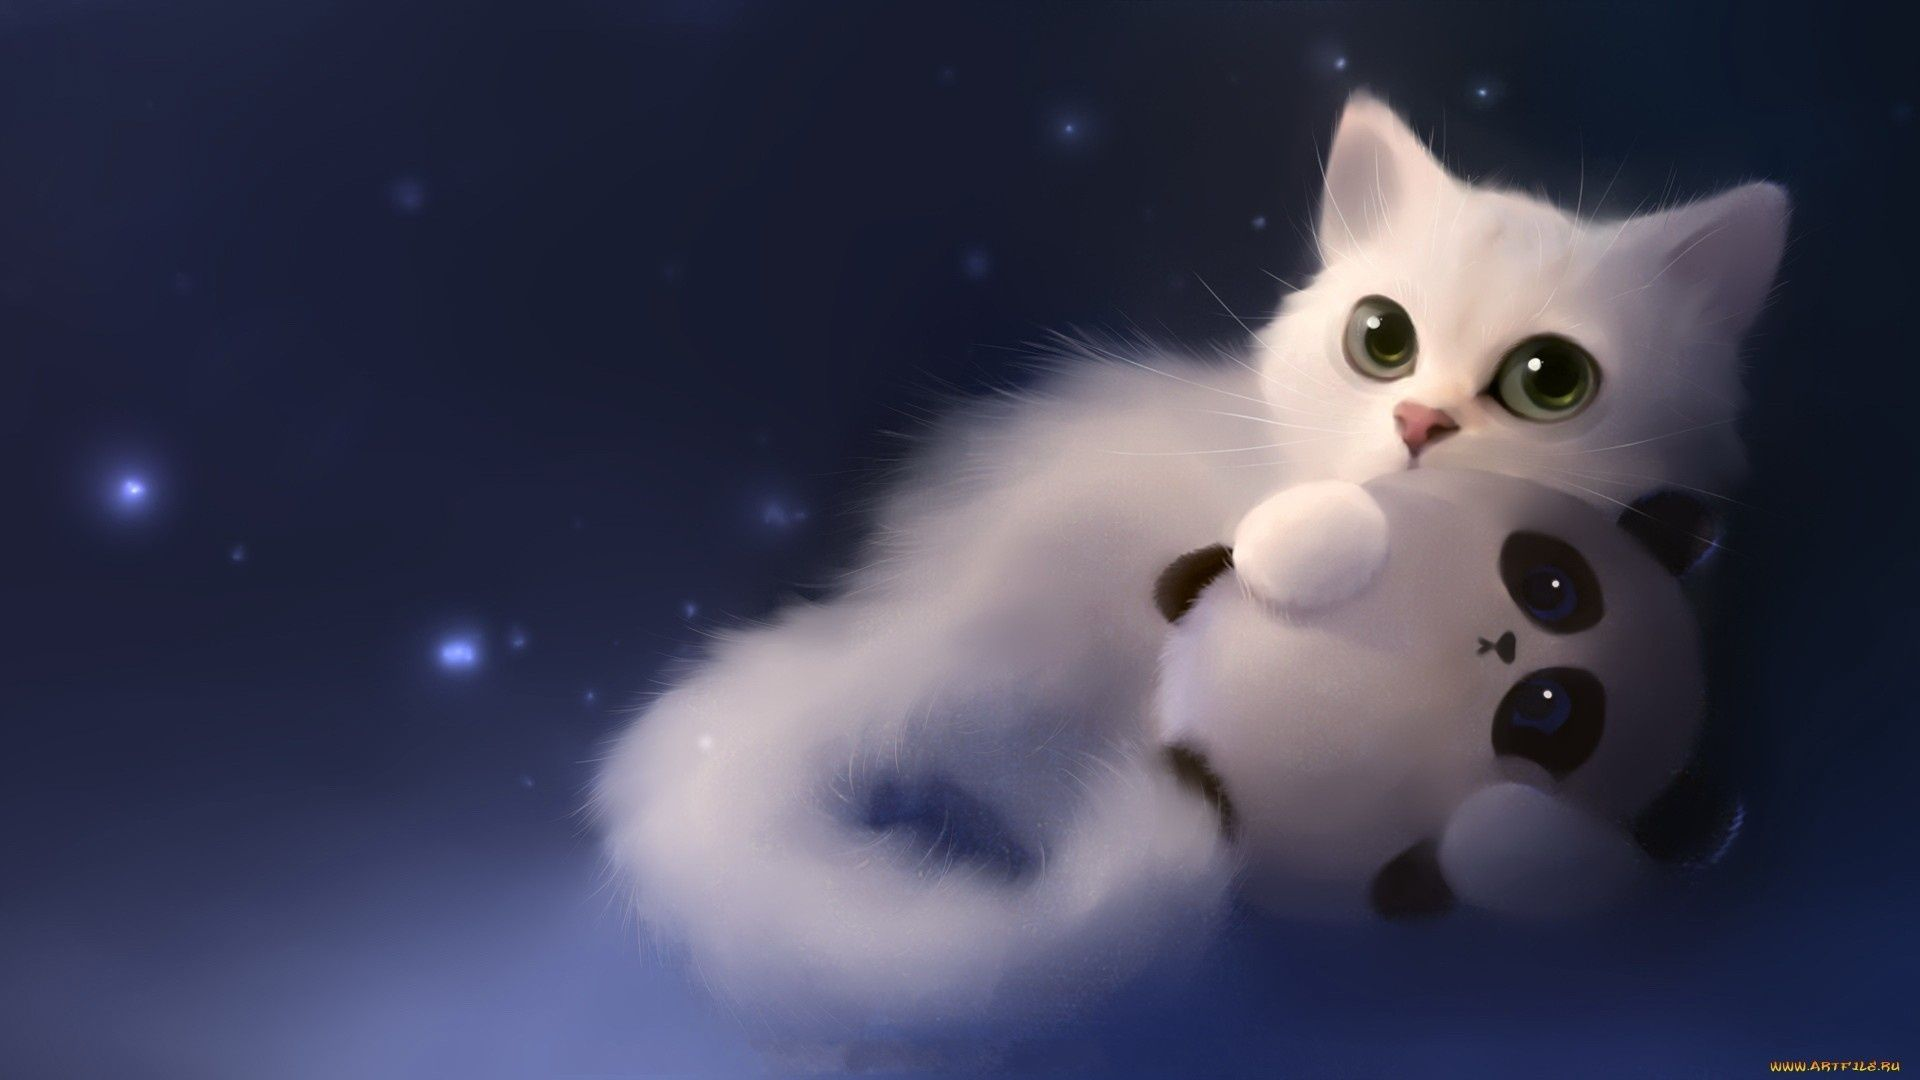 Best images about Cartoon on Pinterest  Cats, Chibi and Cat 1920x1080